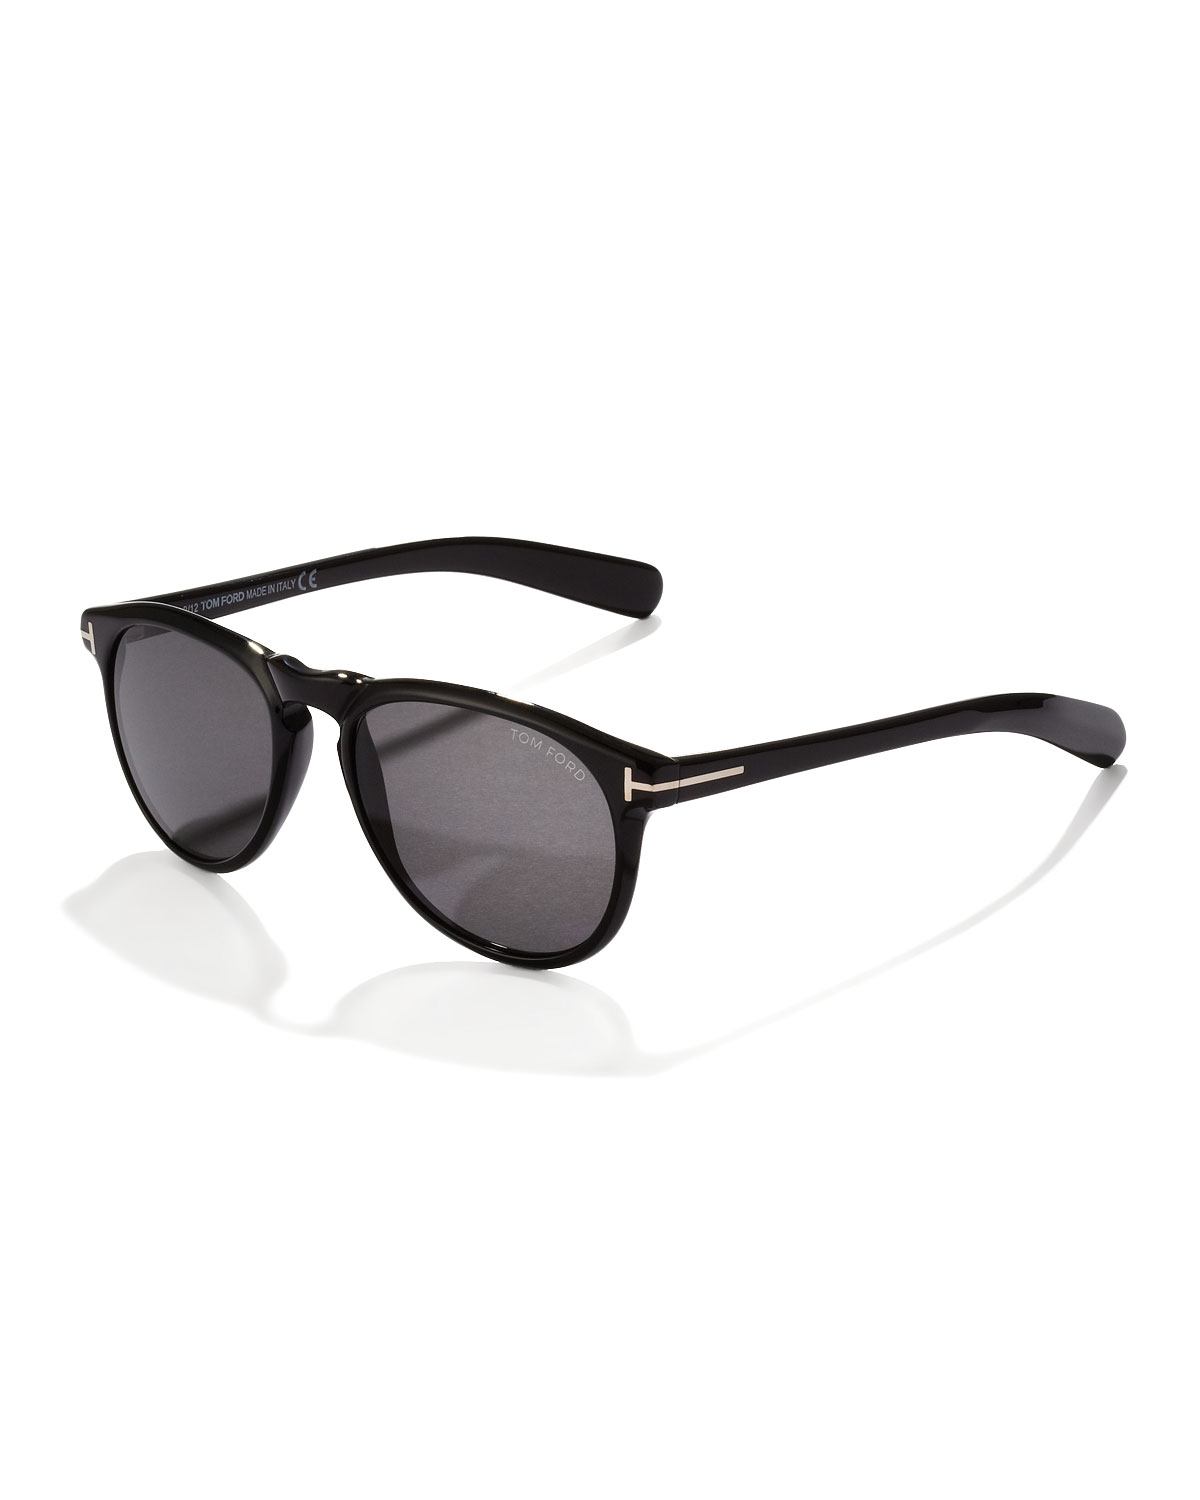 tom ford flynn sunglasses in black for men shiny black. Black Bedroom Furniture Sets. Home Design Ideas